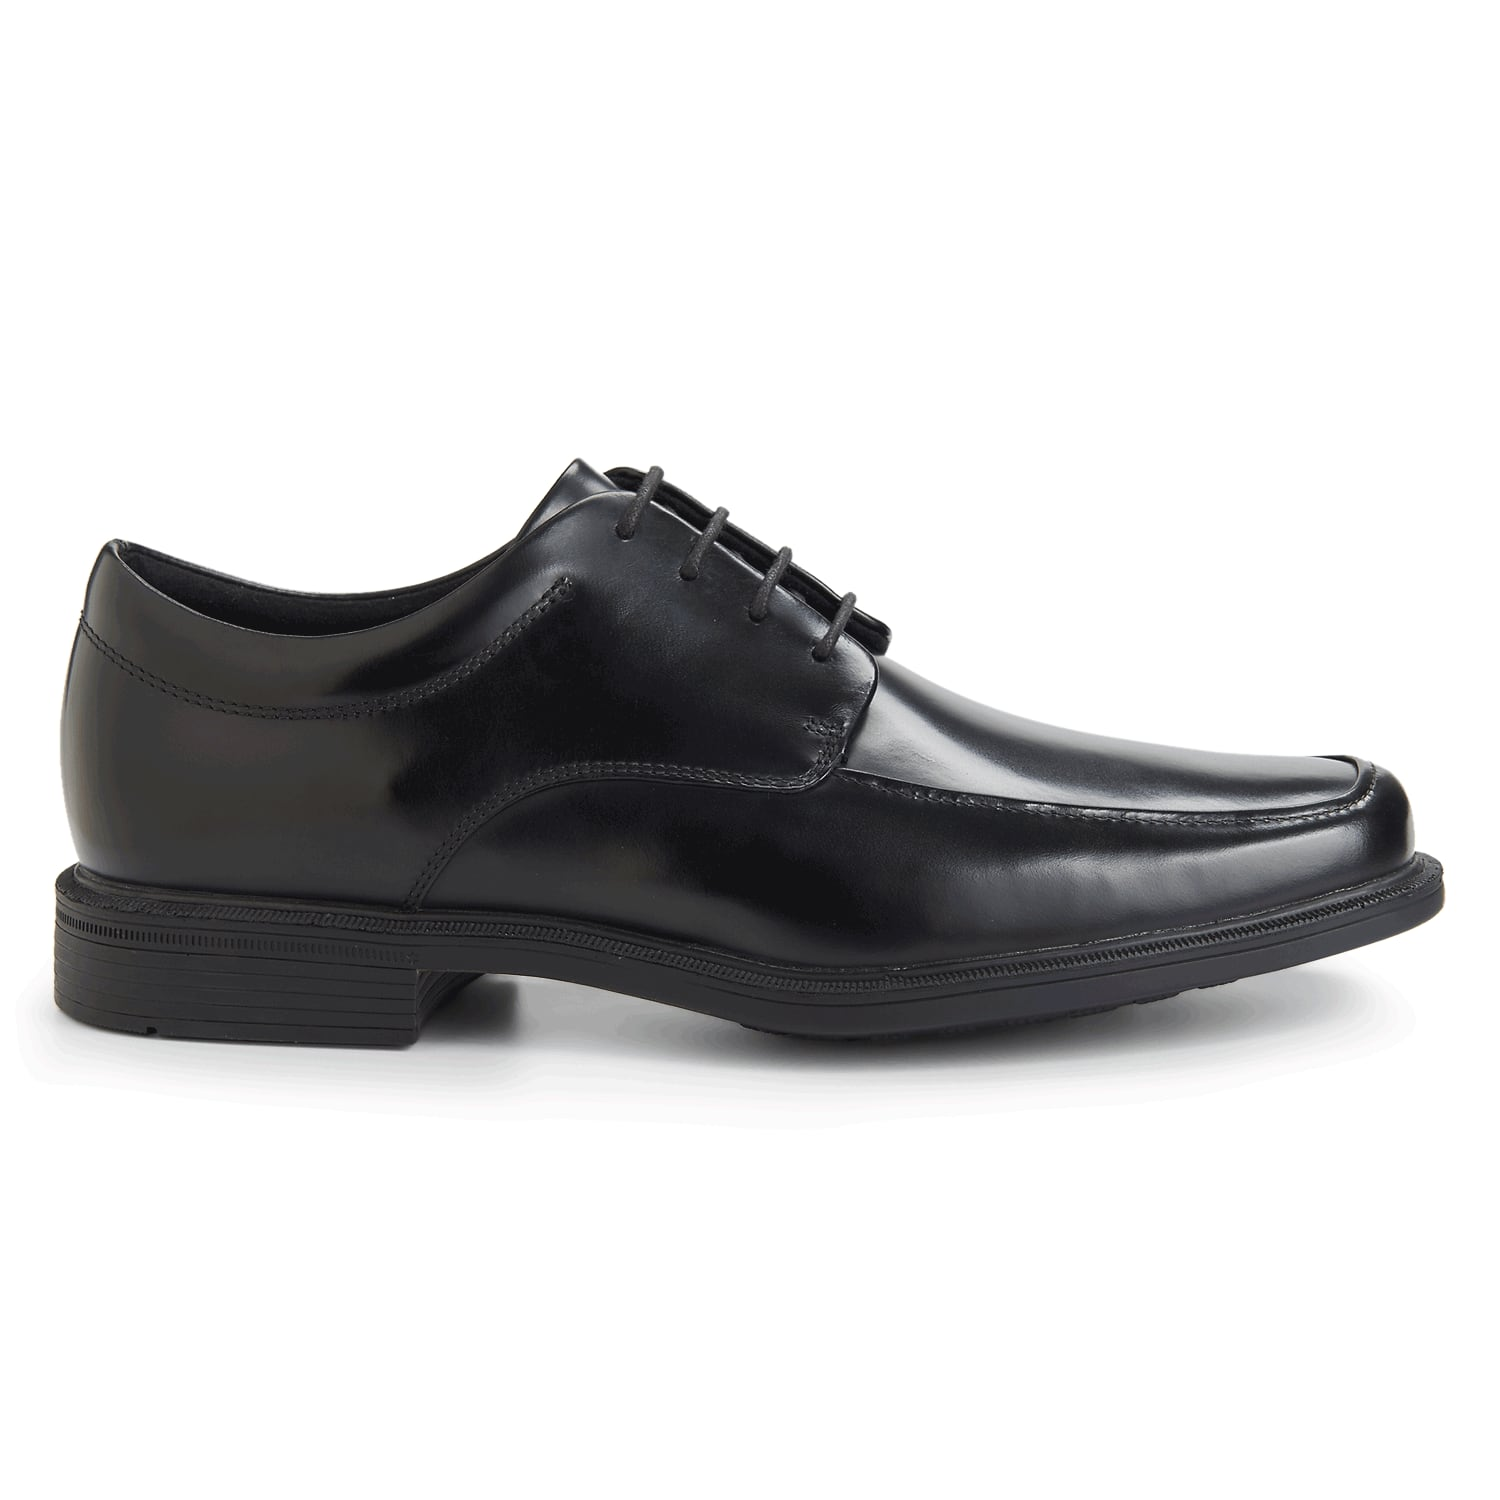 Rockport Flash Sale: Up to 60% Off + Extra 30% Off Men's and Women's Shoes + Free Shipping